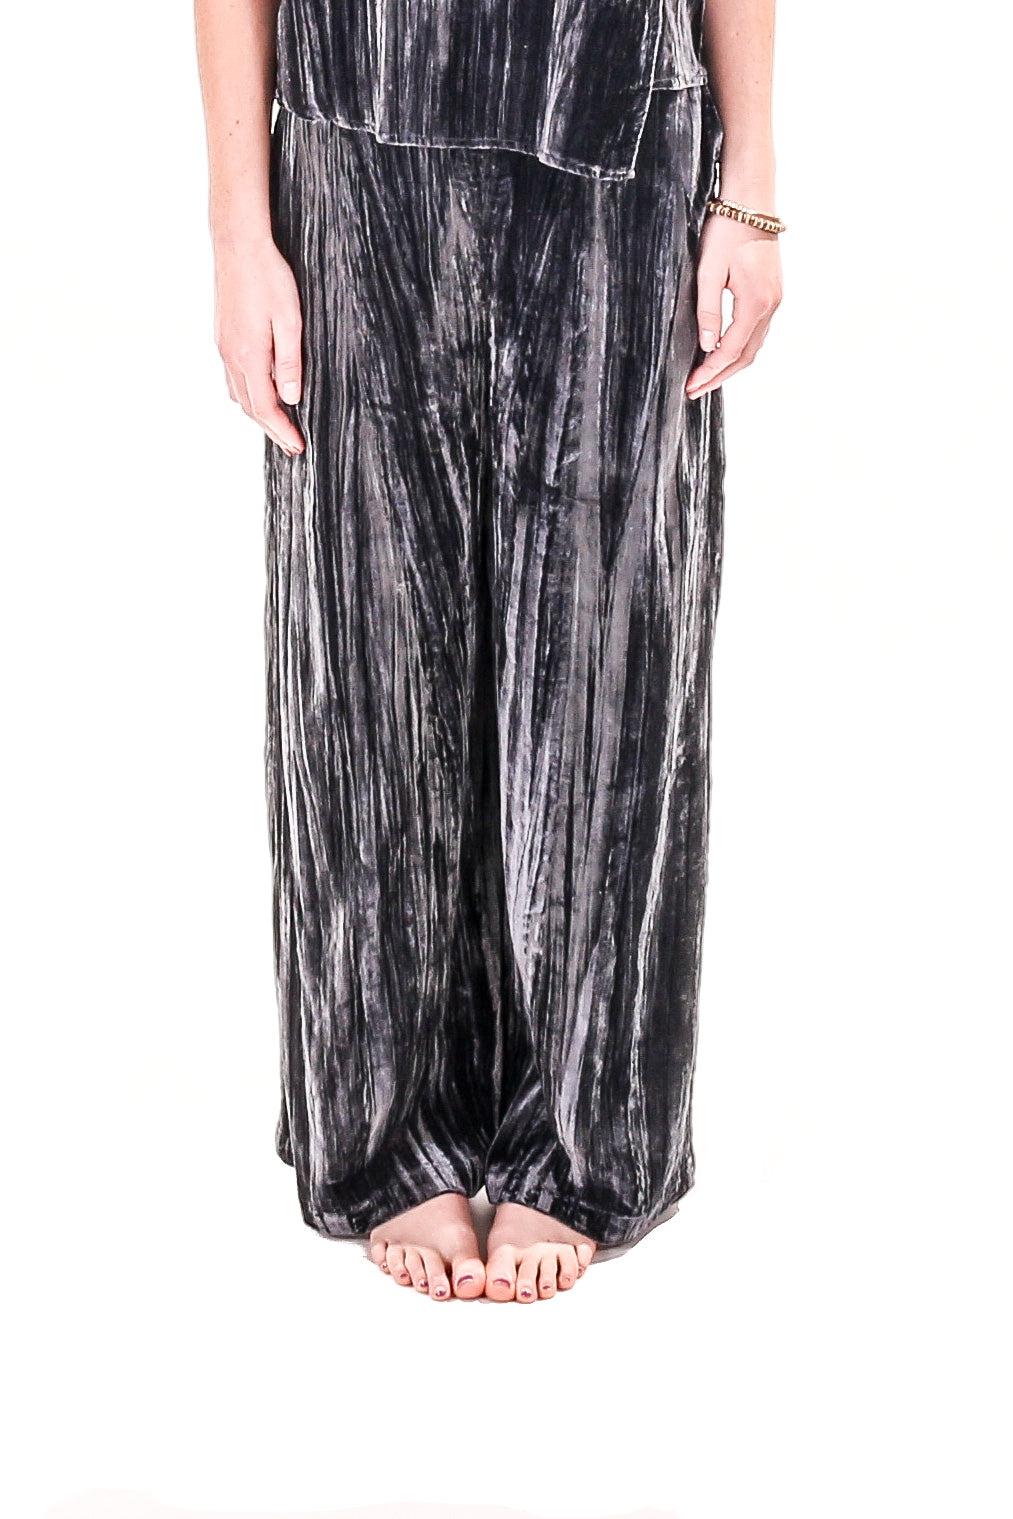 The Angela Pant by 34N118W at Joon + Co.